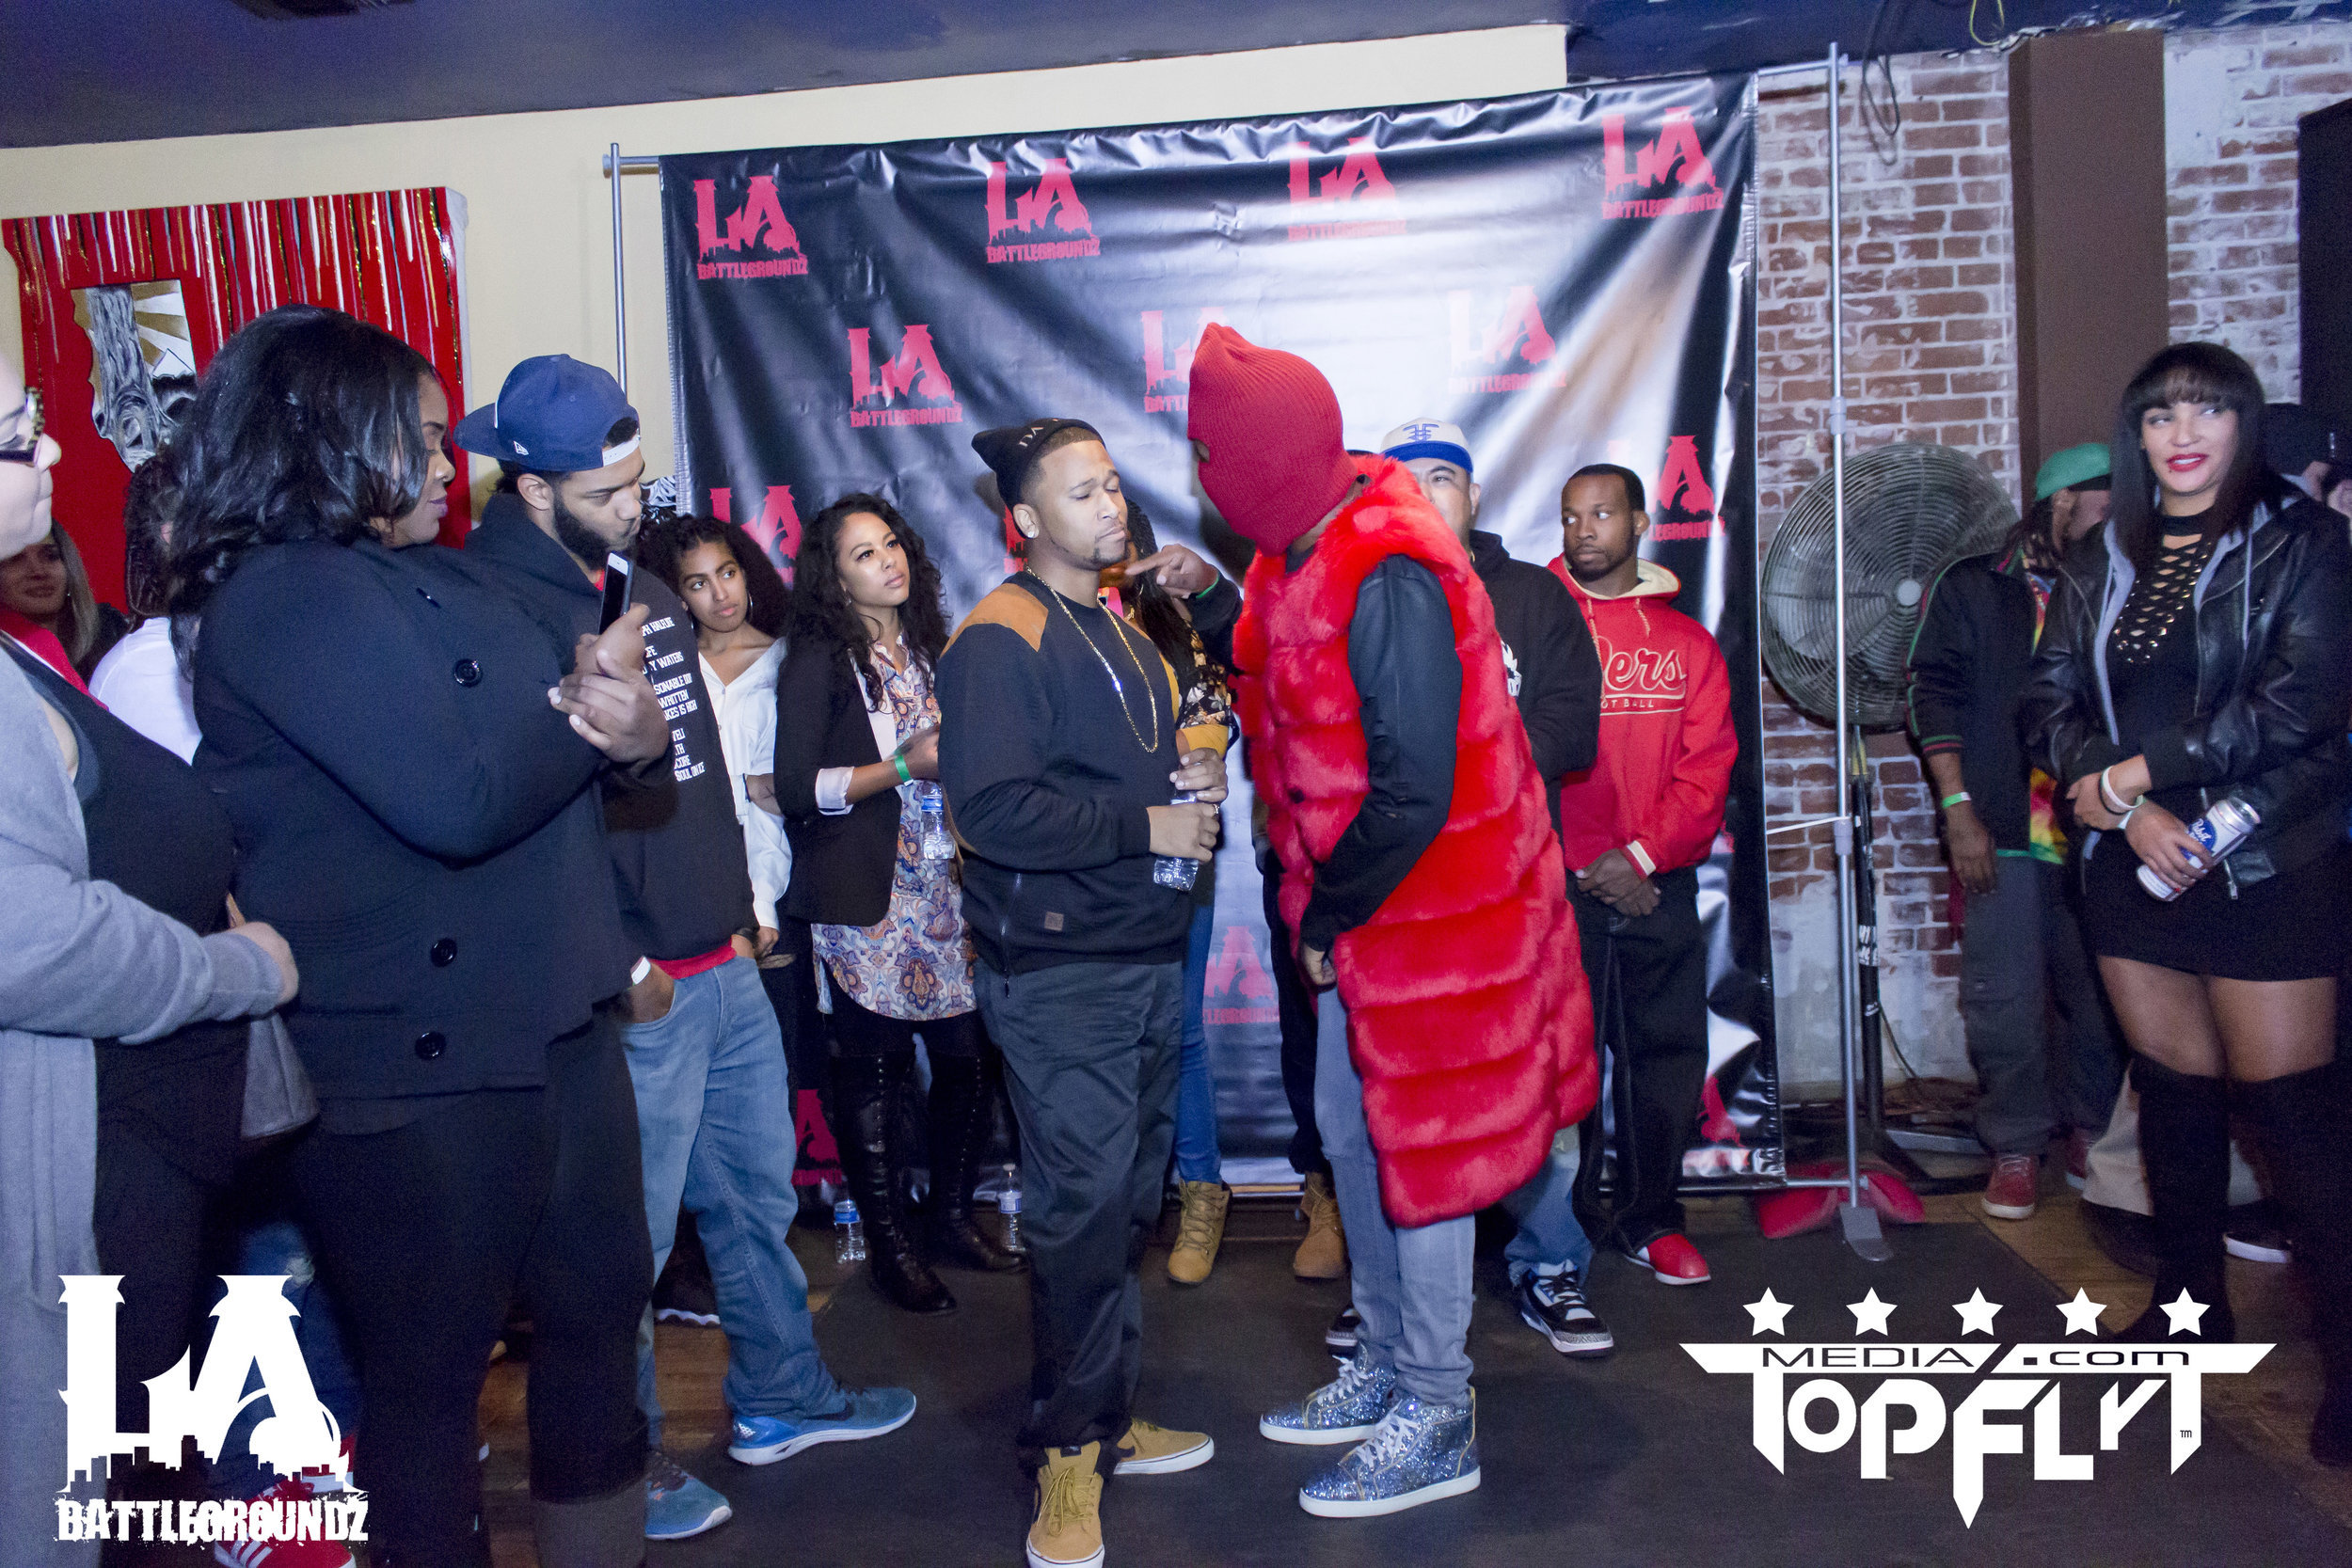 LA Battlegroundz - Decembarfest - The Christening_63.jpg